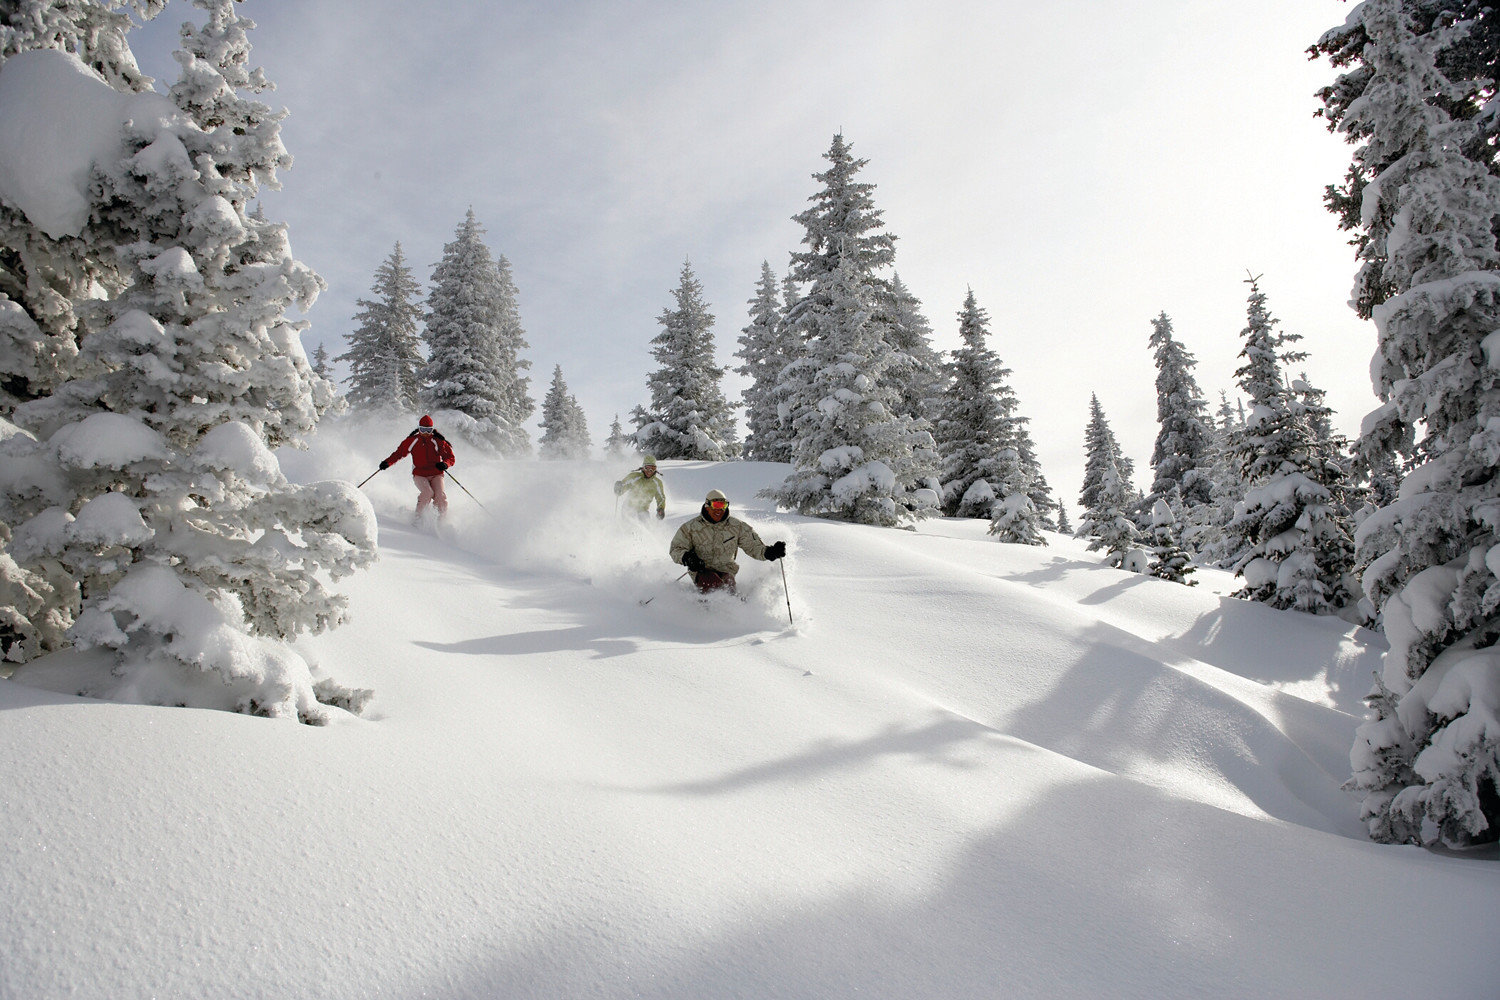 Mountains + Skiing Trip Ideas tree outdoor snow hill slope Nature Winter footwear weather covered geological phenomenon season Ski skiing ski equipment snowshoe piste ski slope winter sport mountain range nordic skiing ski touring ski mountaineering sports equipment Forest hillside day wooded